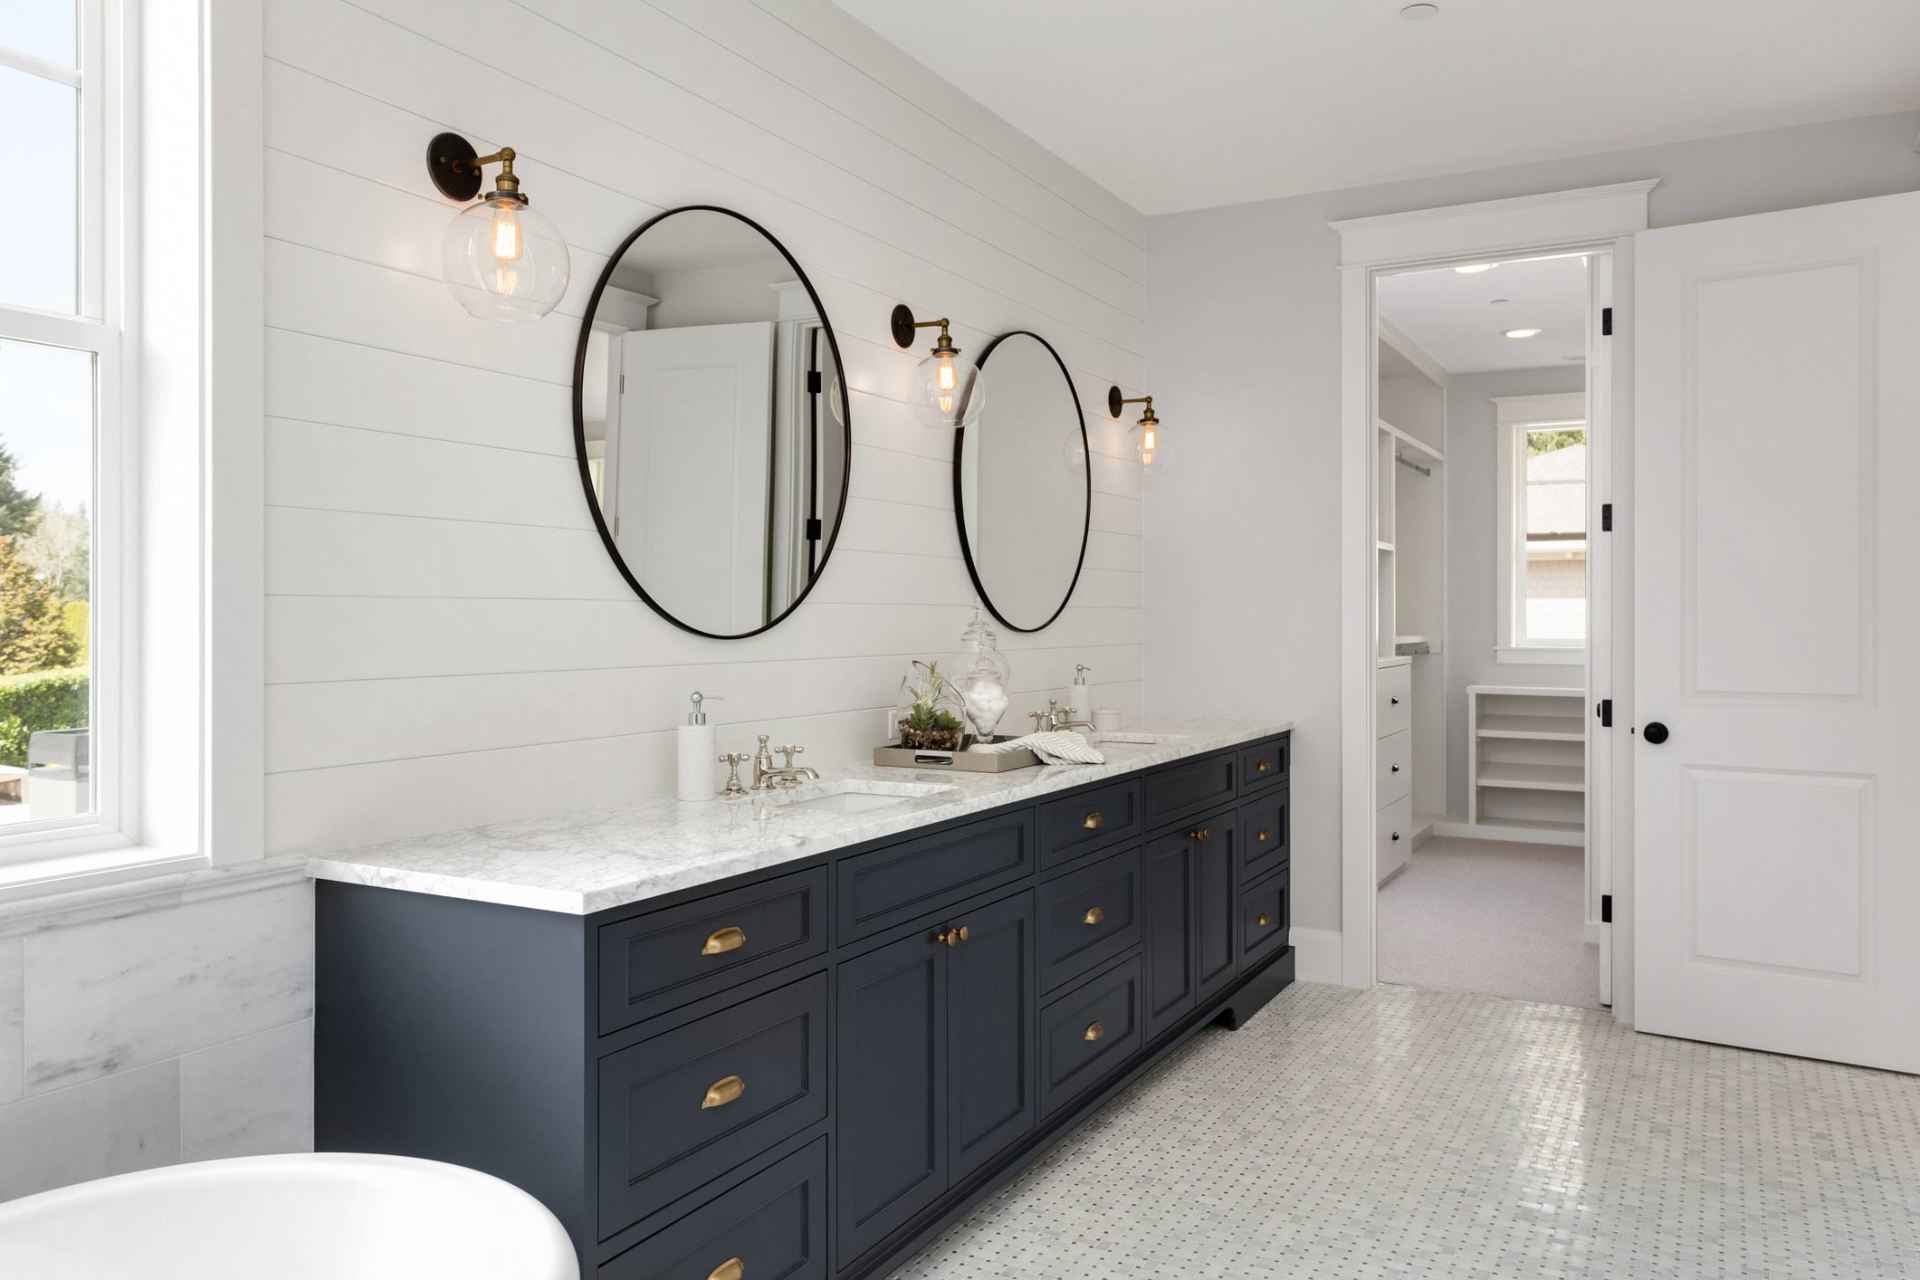 Increase Bathroom Safety With Electrical Outlet Upgrades